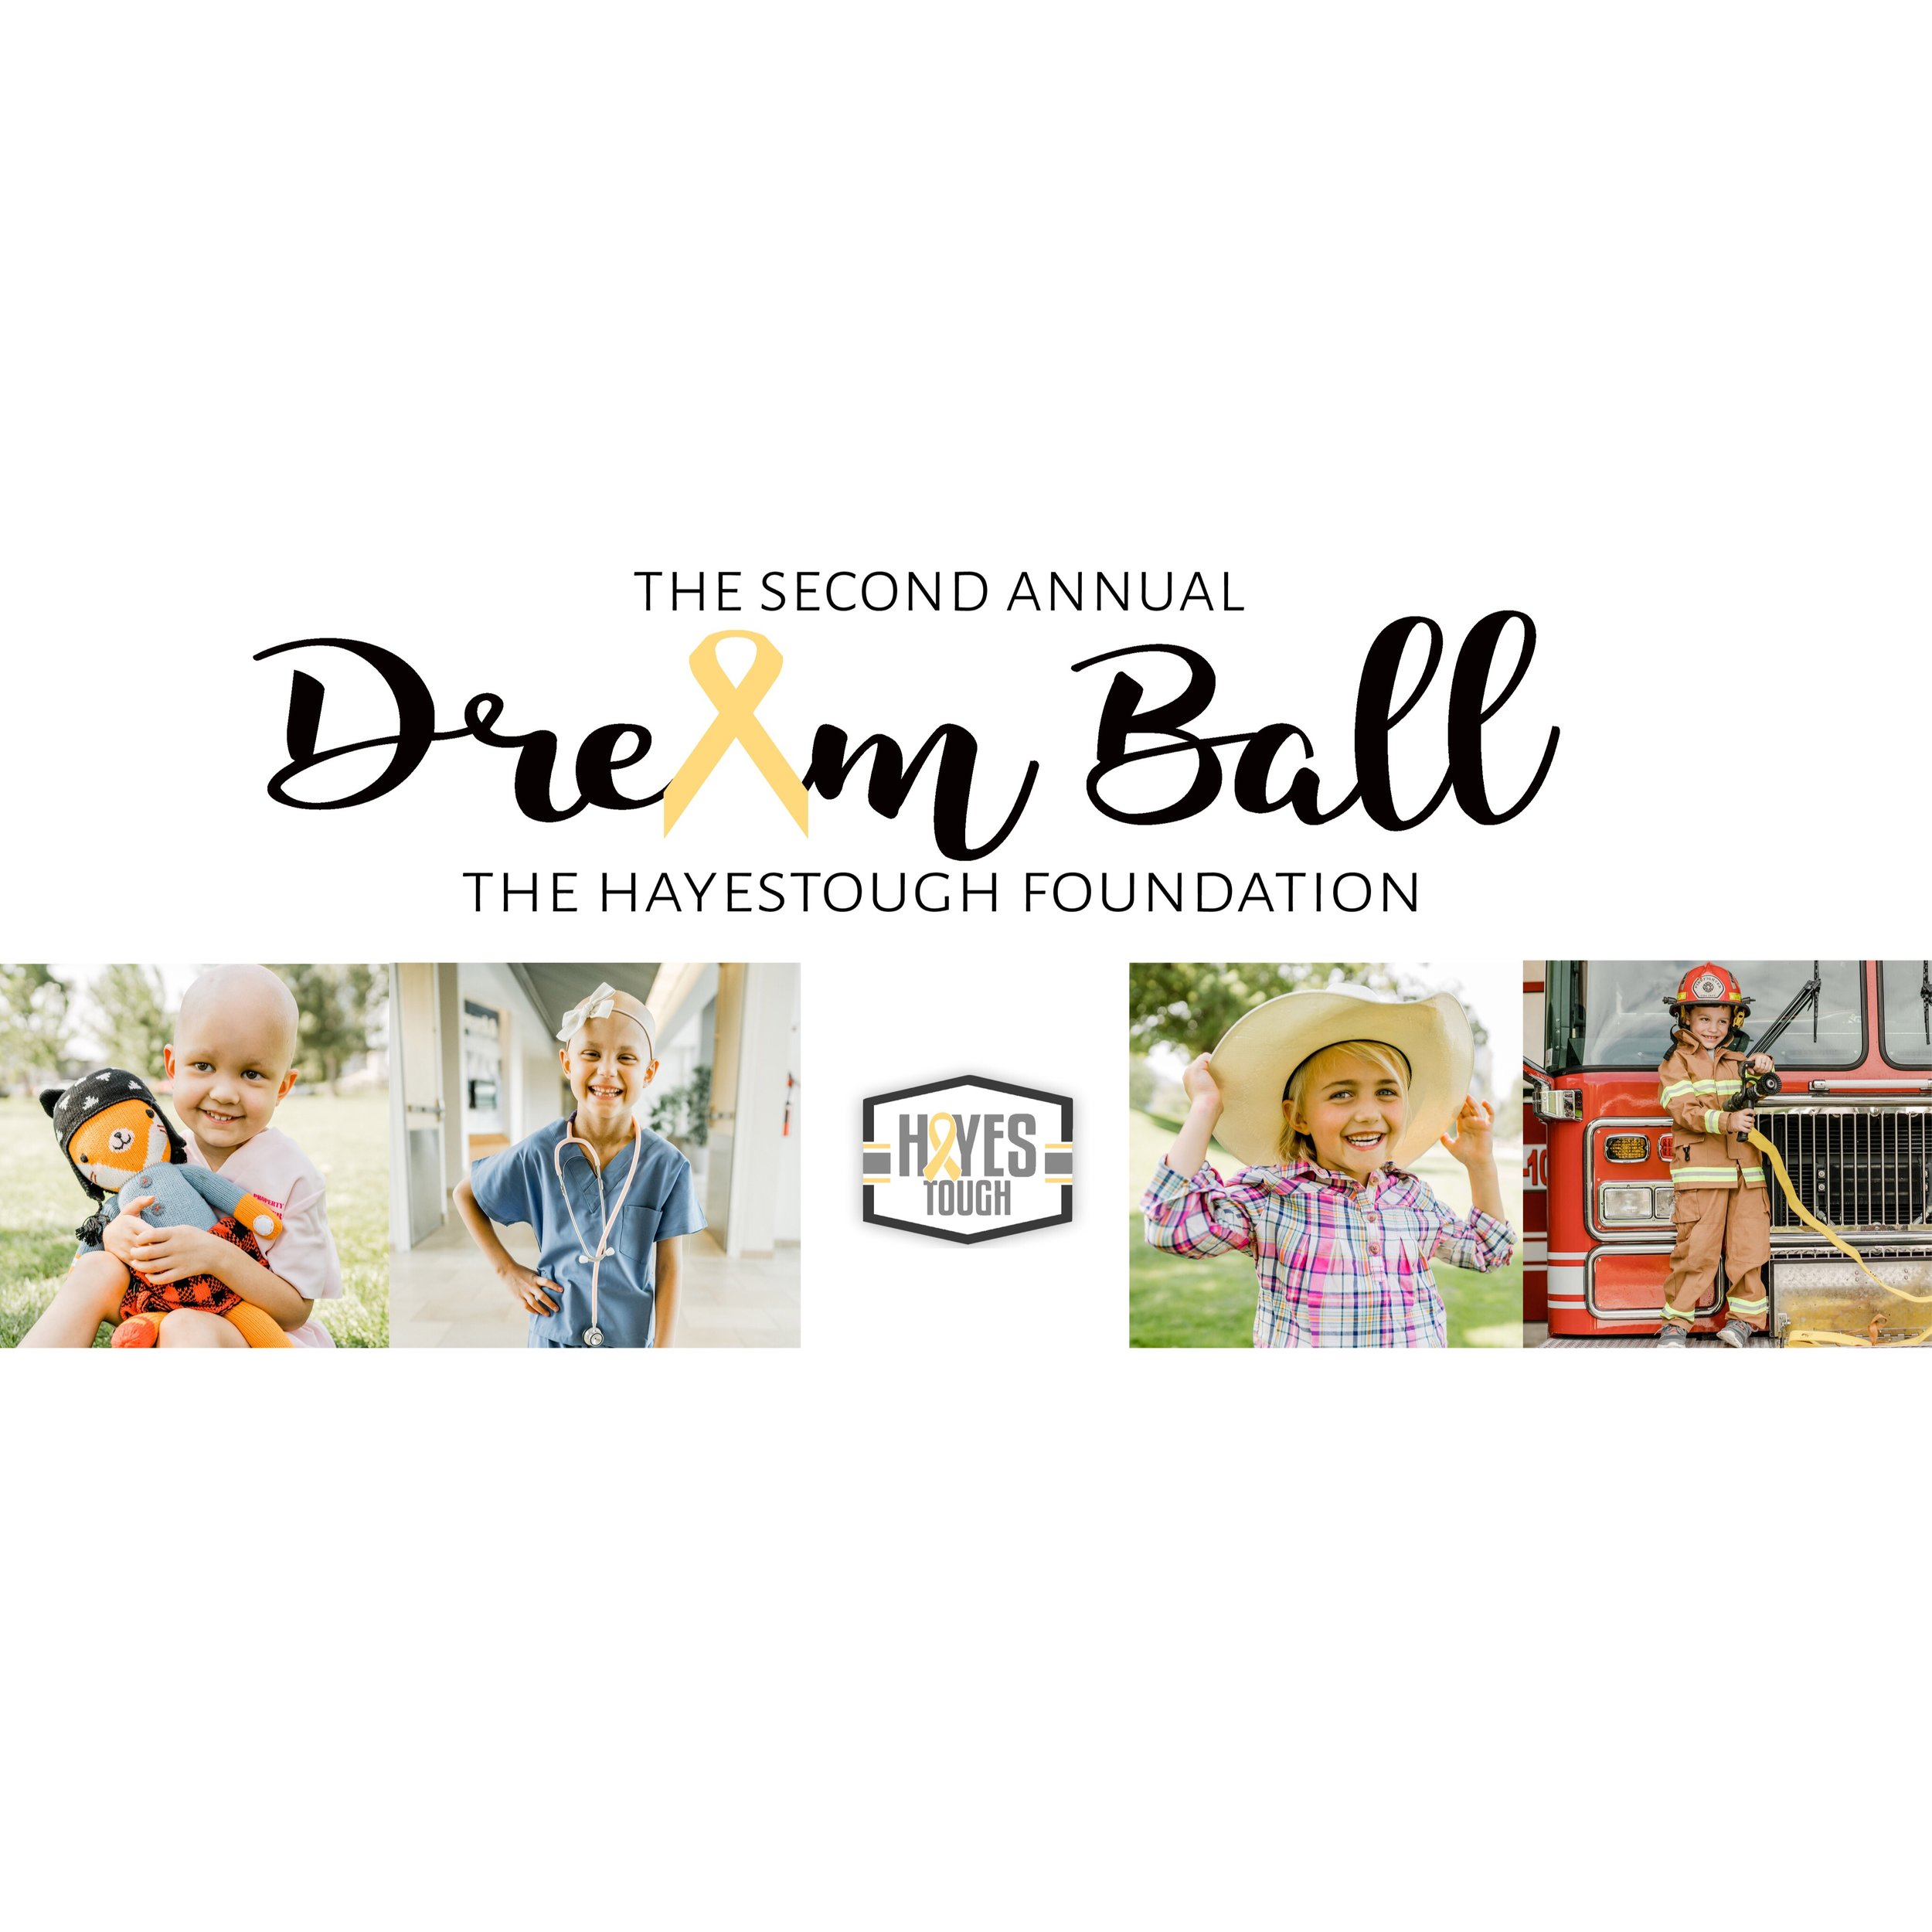 The HayesTough Dream Ball - Held every fall in Salt Lake City, Utah where we make dreams come true for 10 local childhood cancer warriors. An inspiring evening with food, entertainment, auctions and lots of happy kids.